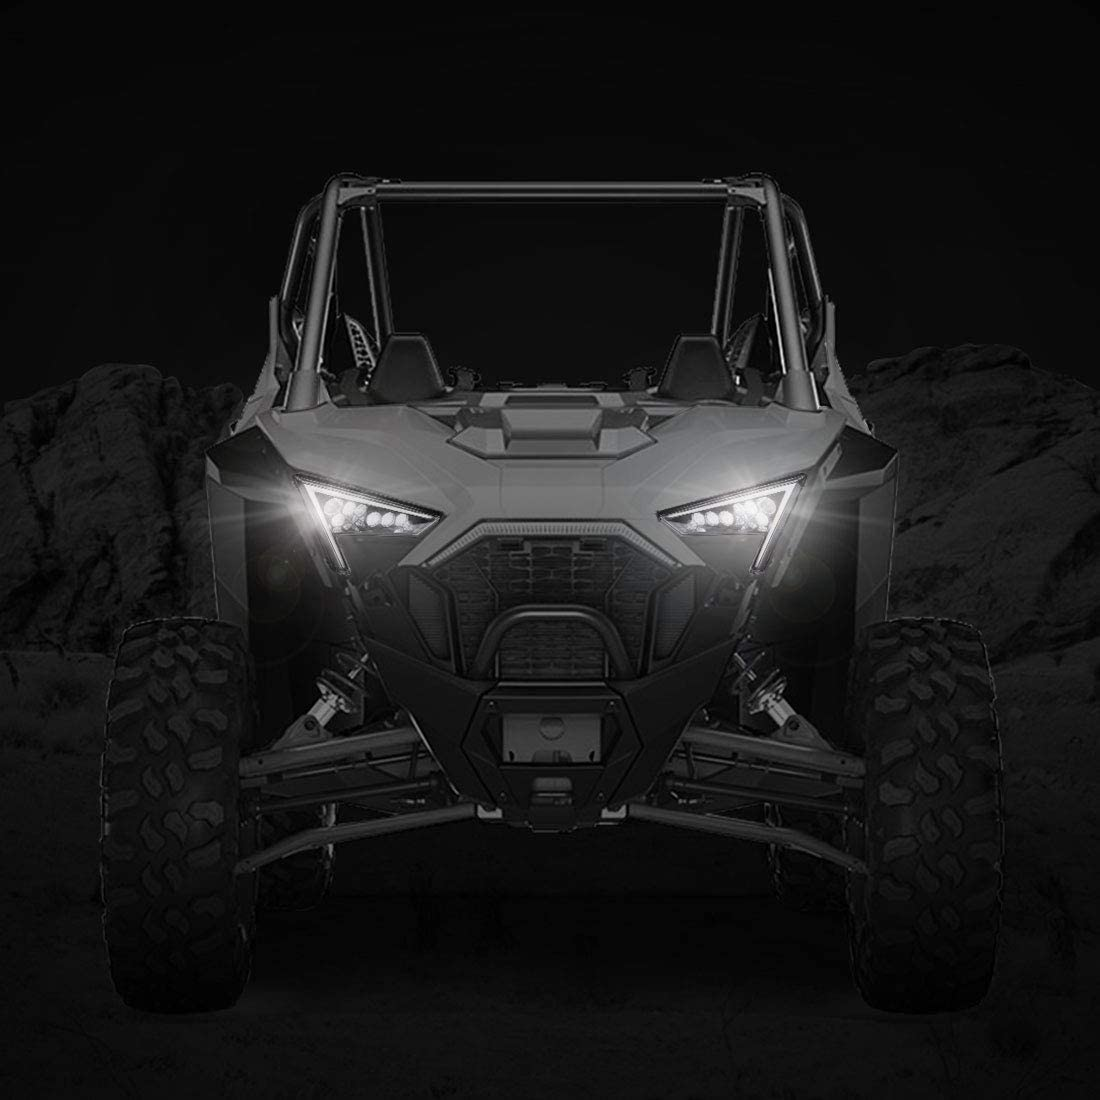 4 KEMIMOTO front Signature//Fang Light Turn Singal Assembies Compatible with 2020 2021 Polaris RZR PRO XP RZR Front Headlights with Turn Signal Function